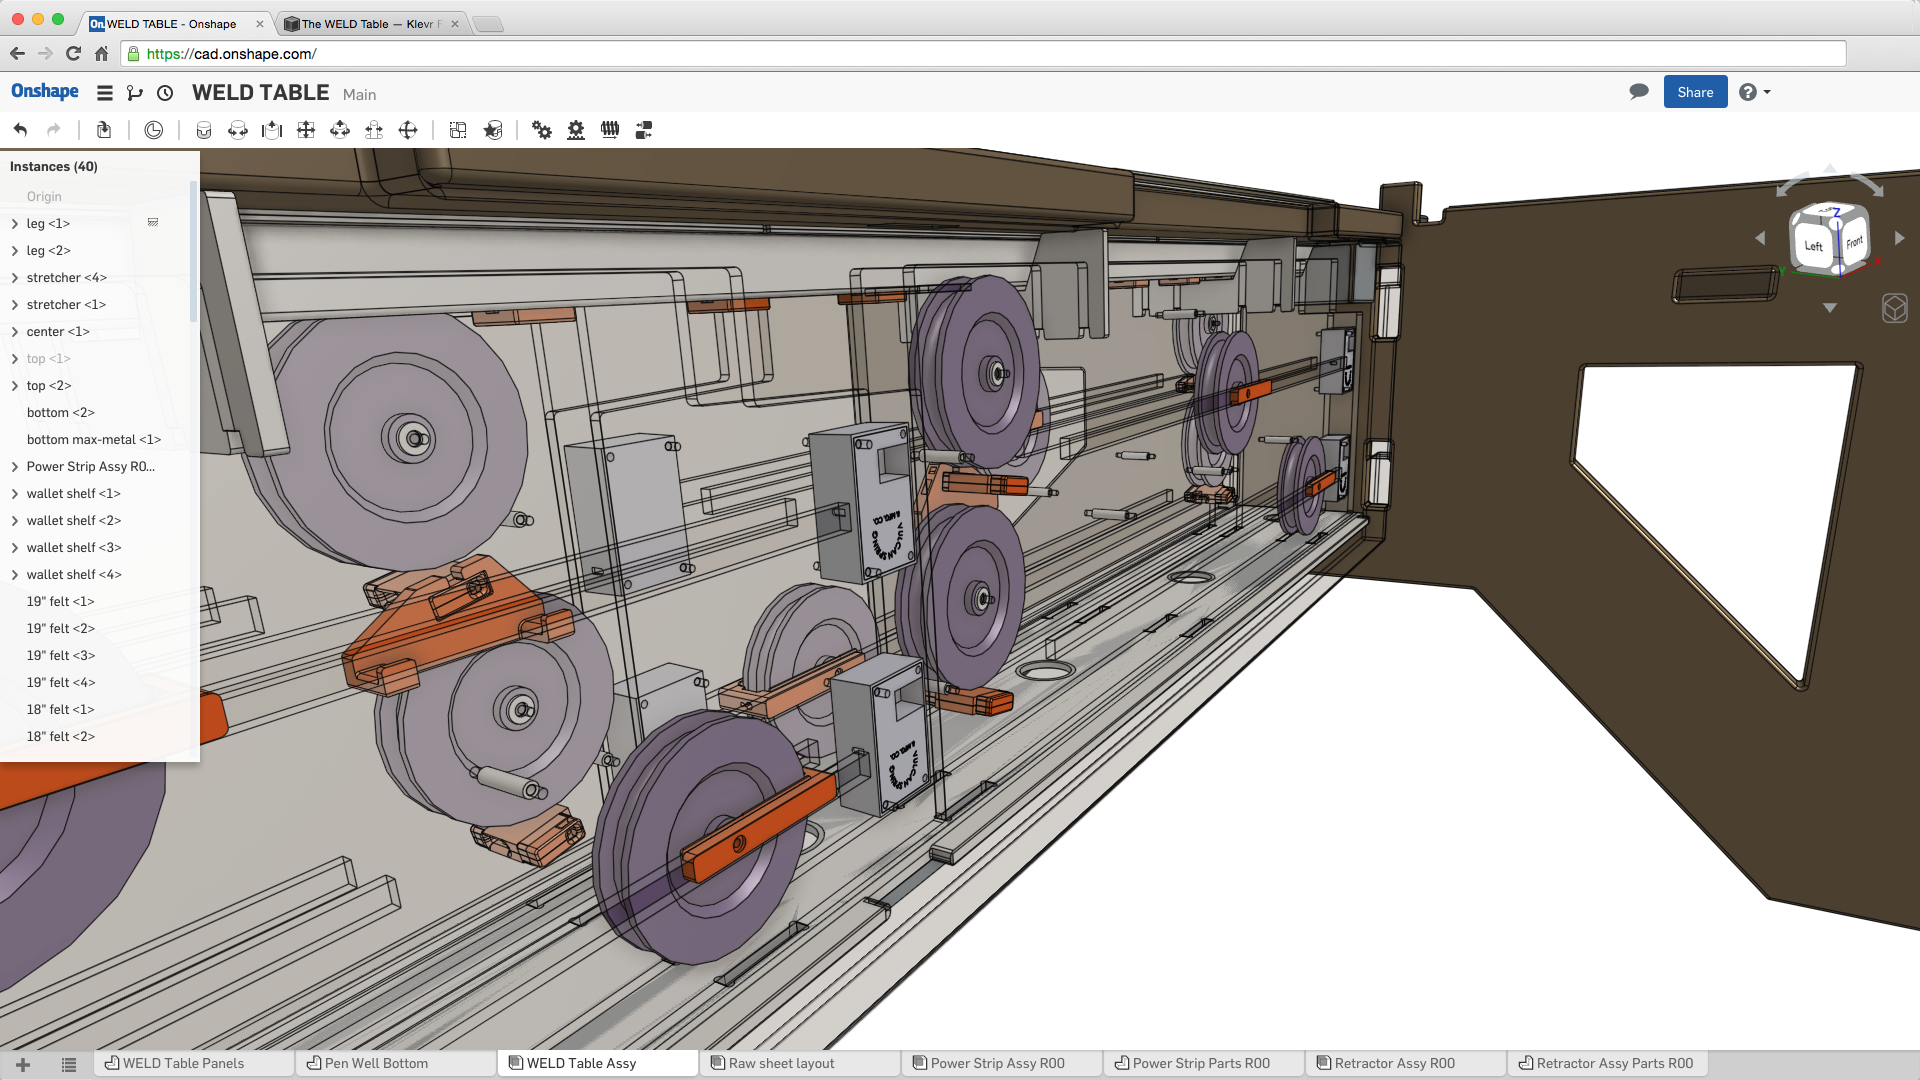 Wireframe view of center of Klevr WELD Table